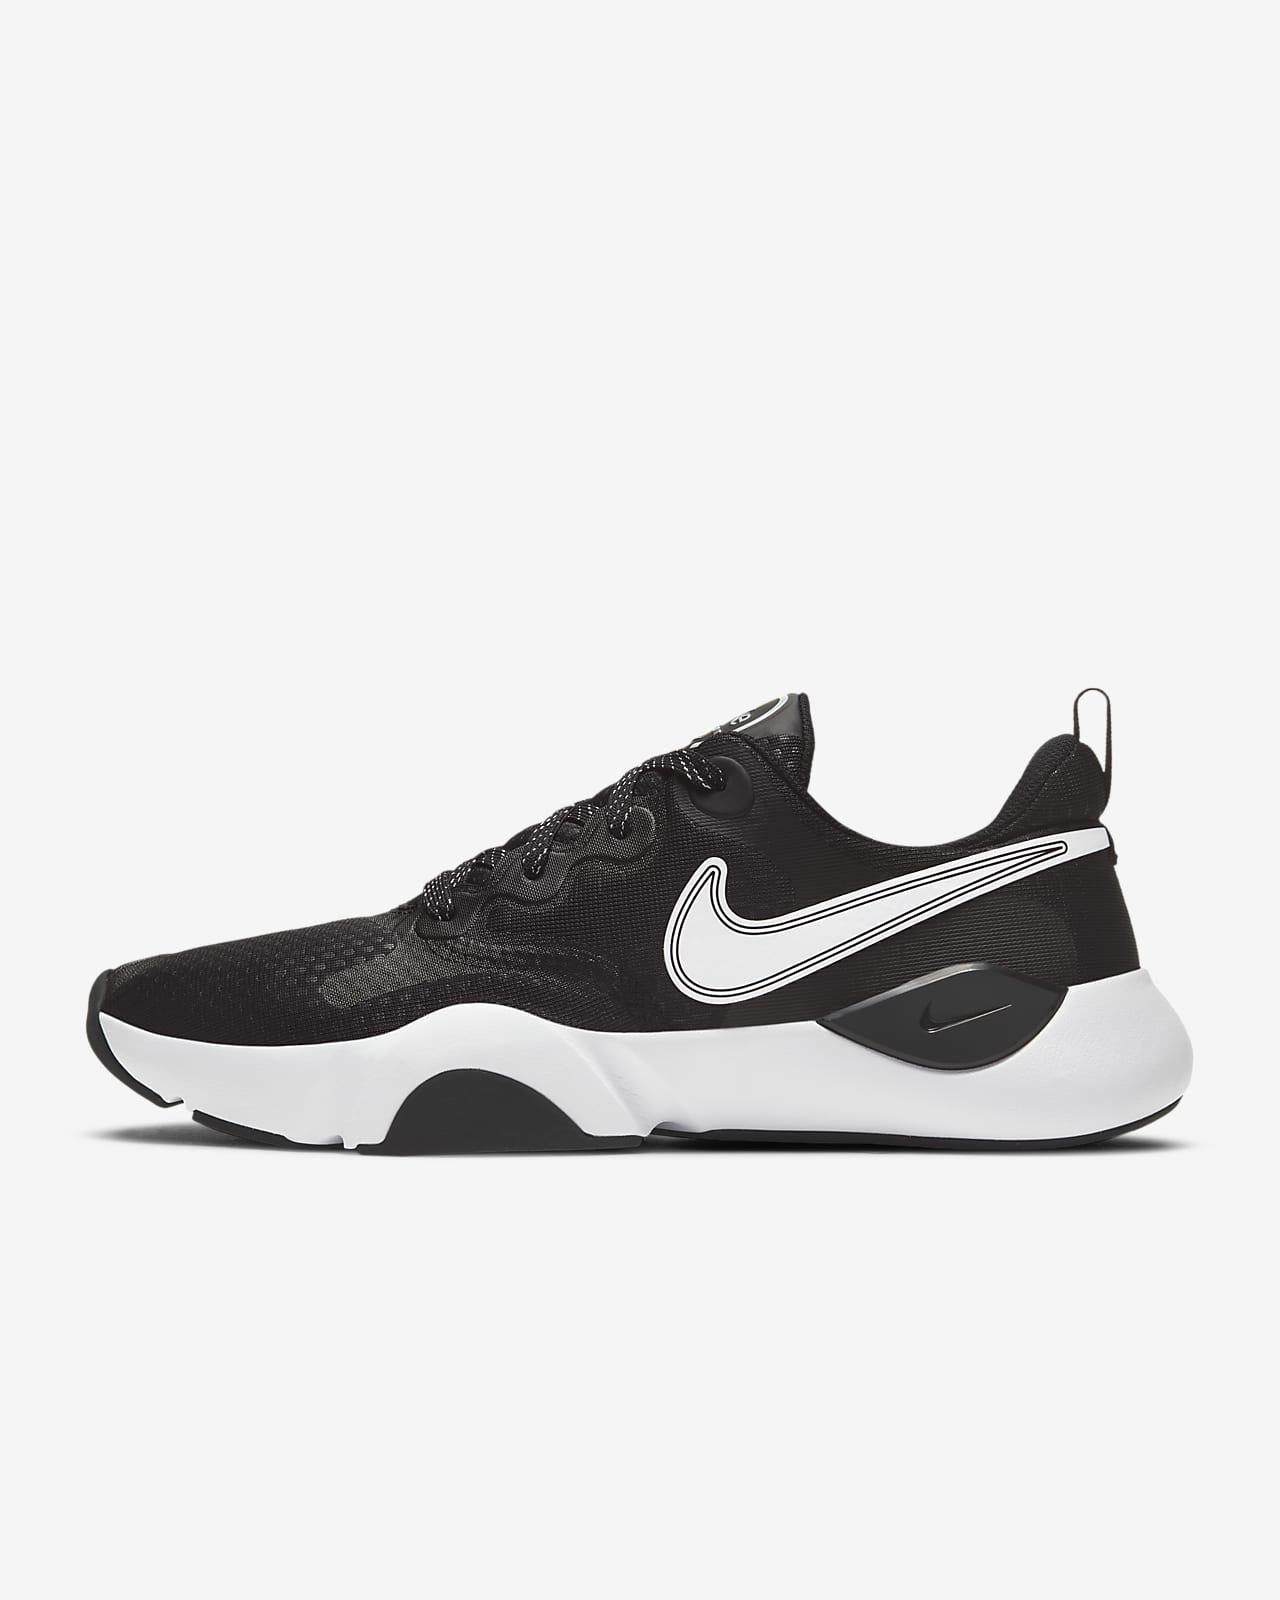 Nike SpeedRep Men's Training Shoe